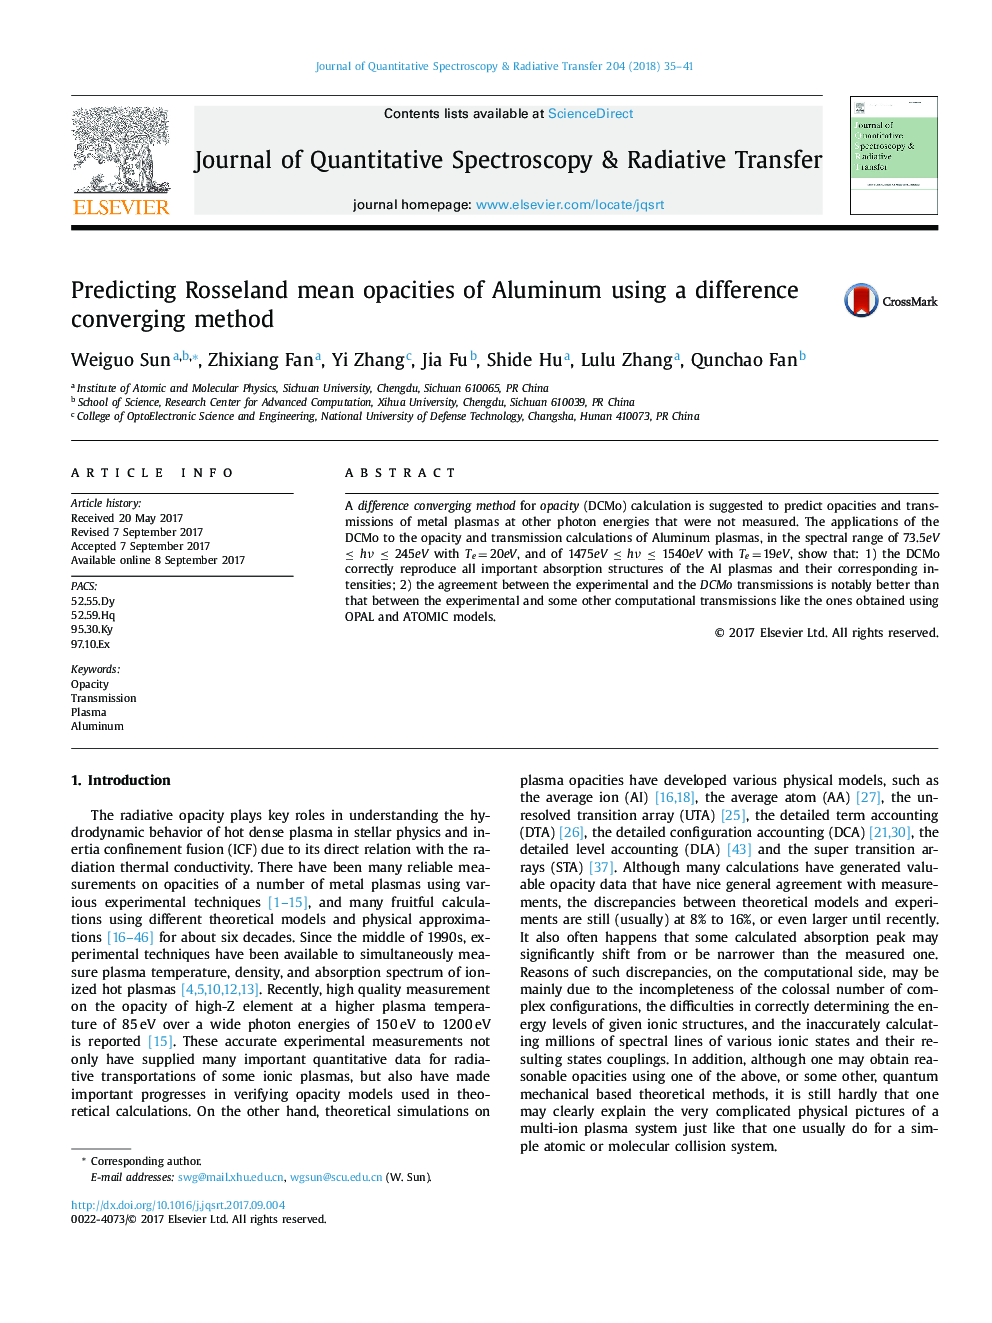 Predicting Rosseland mean opacities of Aluminum using a difference converging method